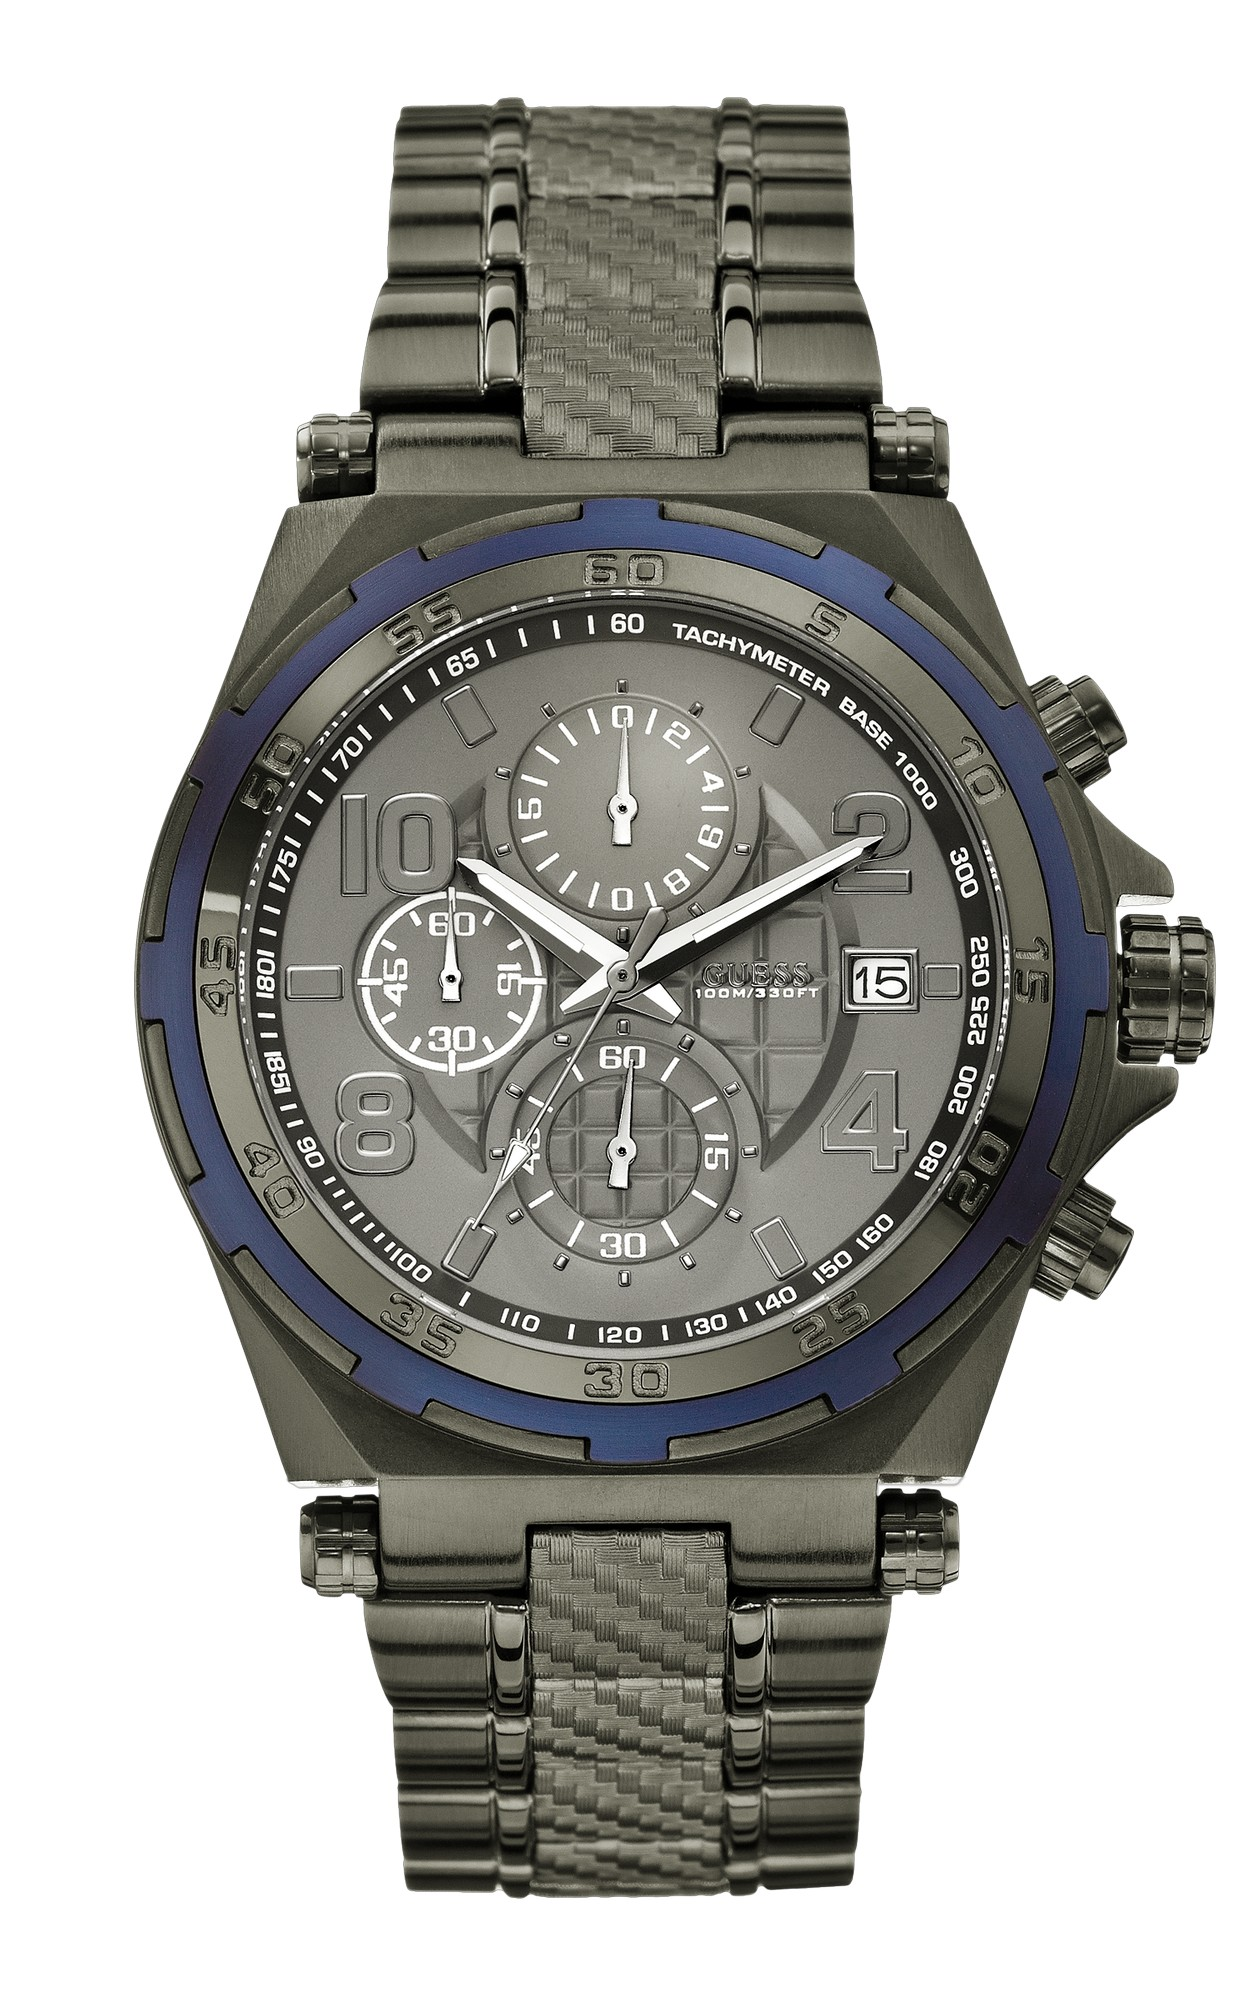 neu guess herrenuhr w0243g3 chronograph armbanduhr uhr. Black Bedroom Furniture Sets. Home Design Ideas